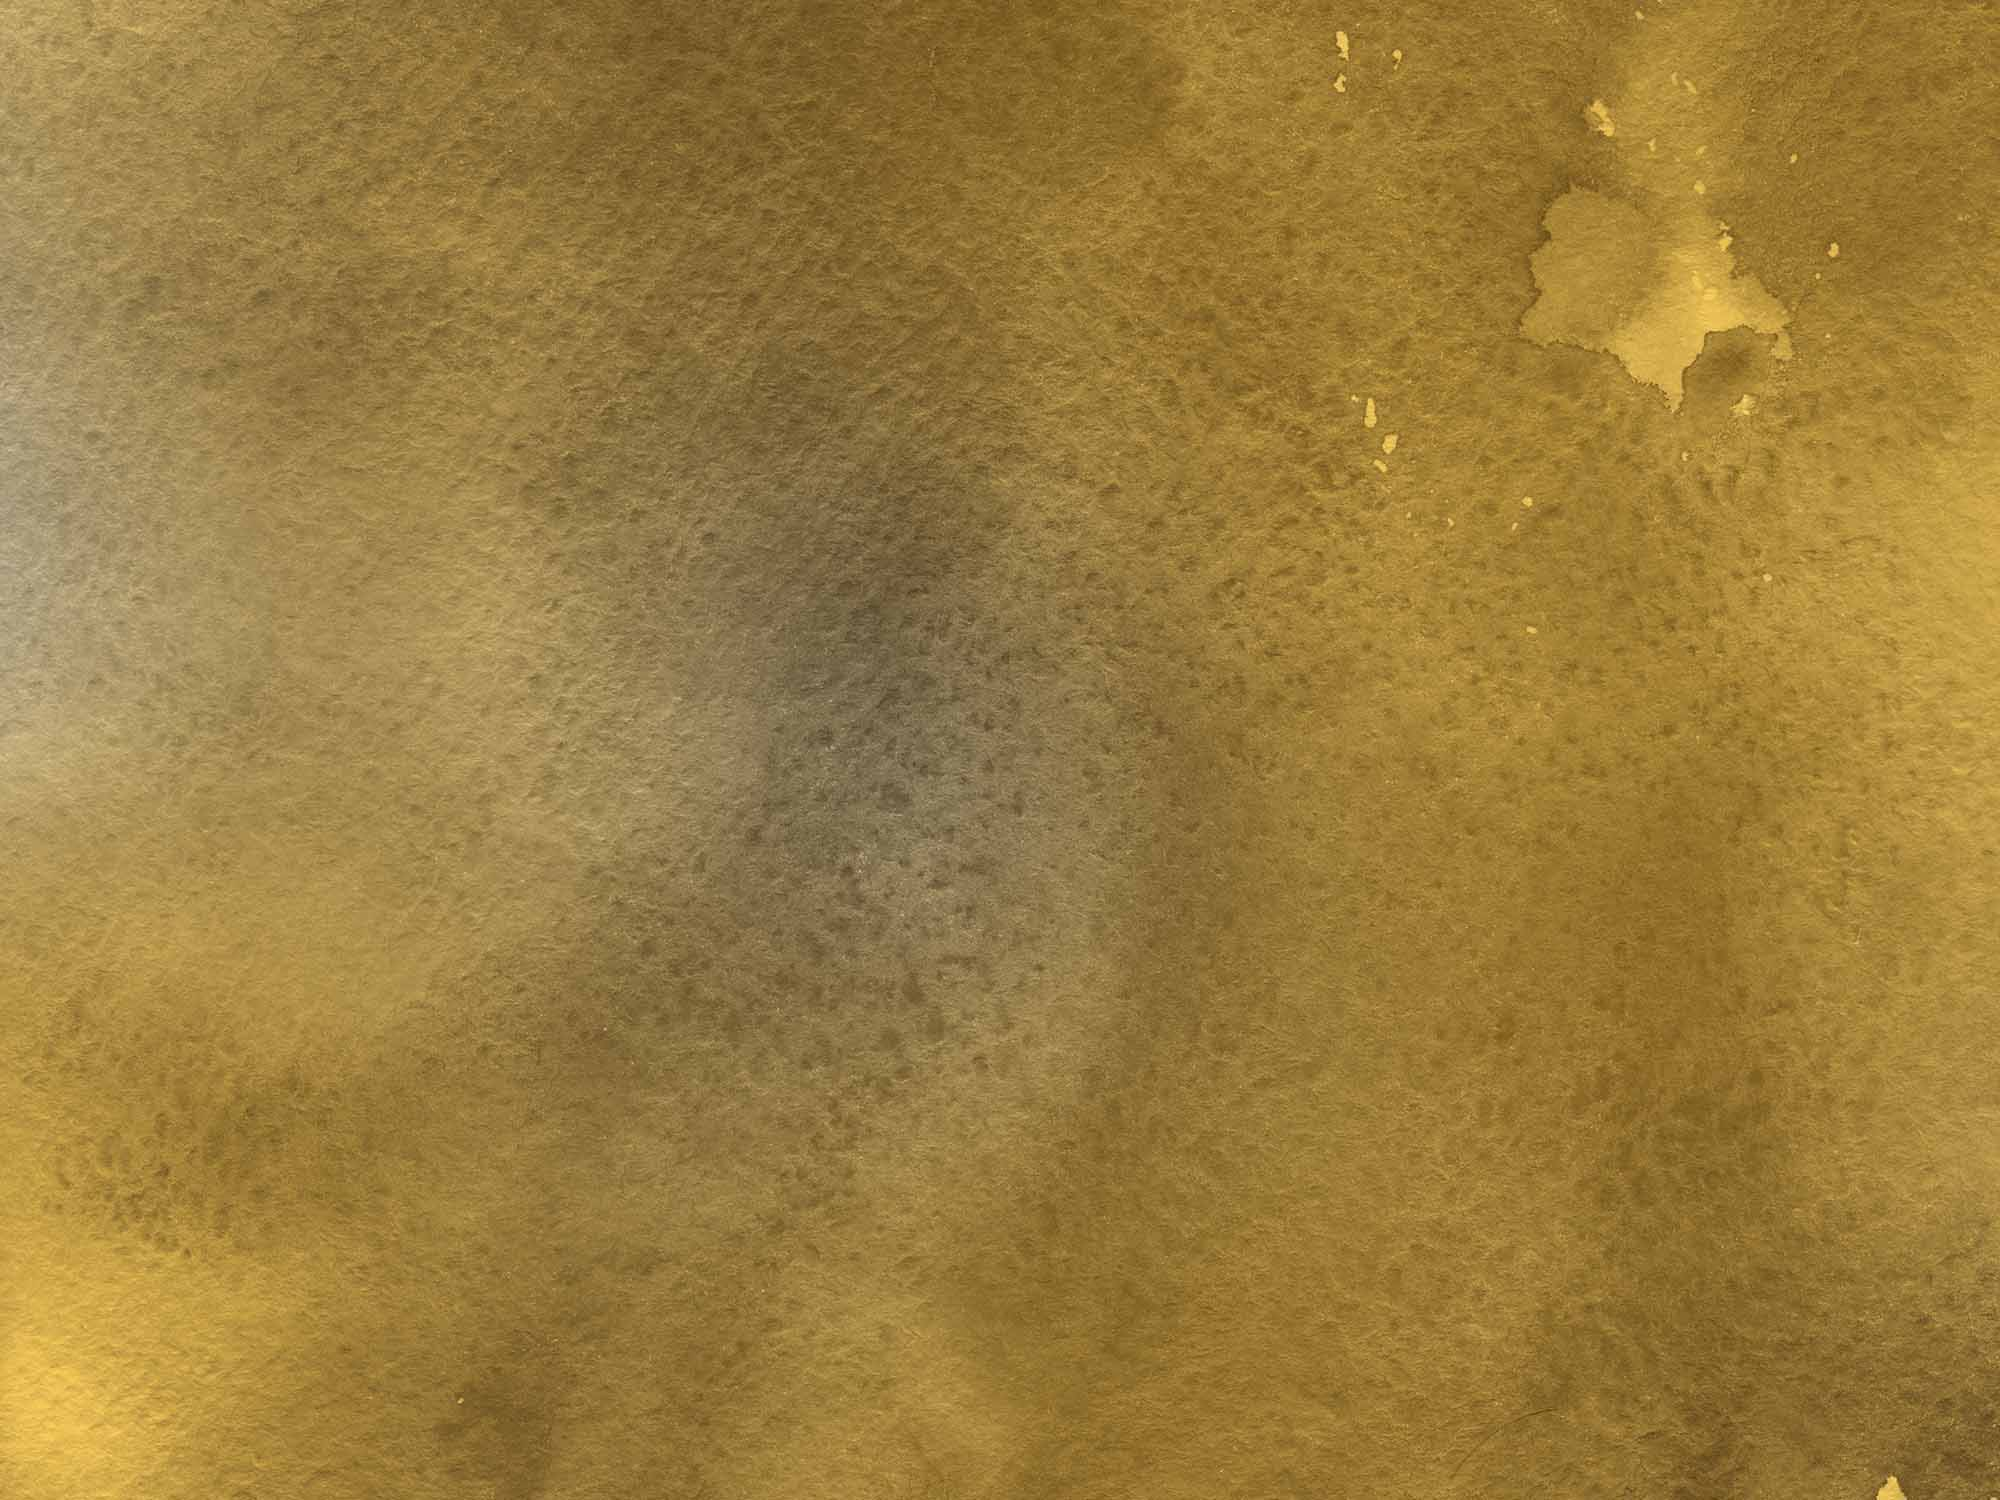 Gold and Silver Watercolor Textures 10